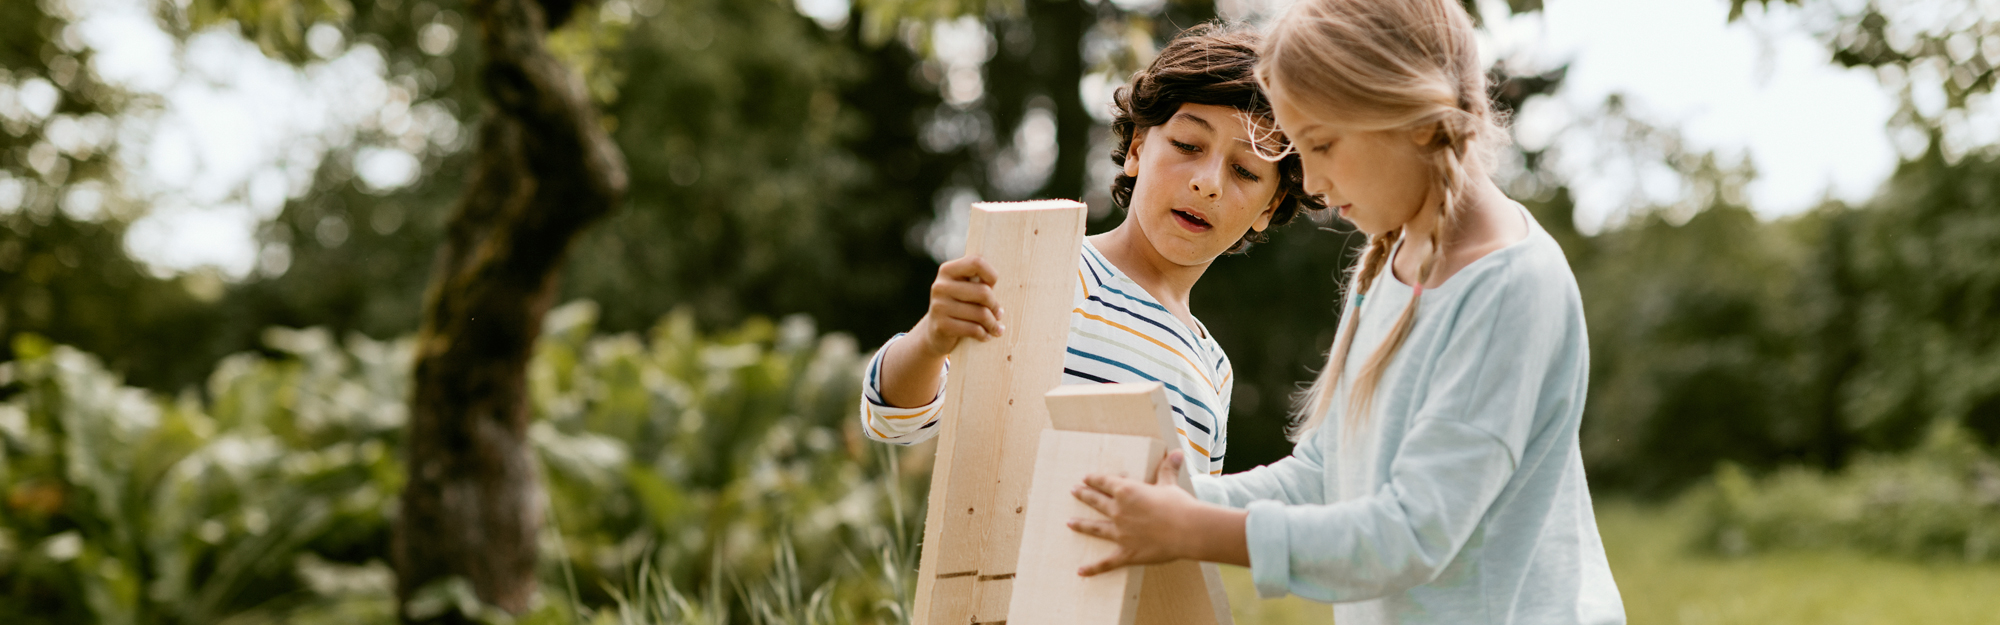 Kids in the garden playing with wooden boards.